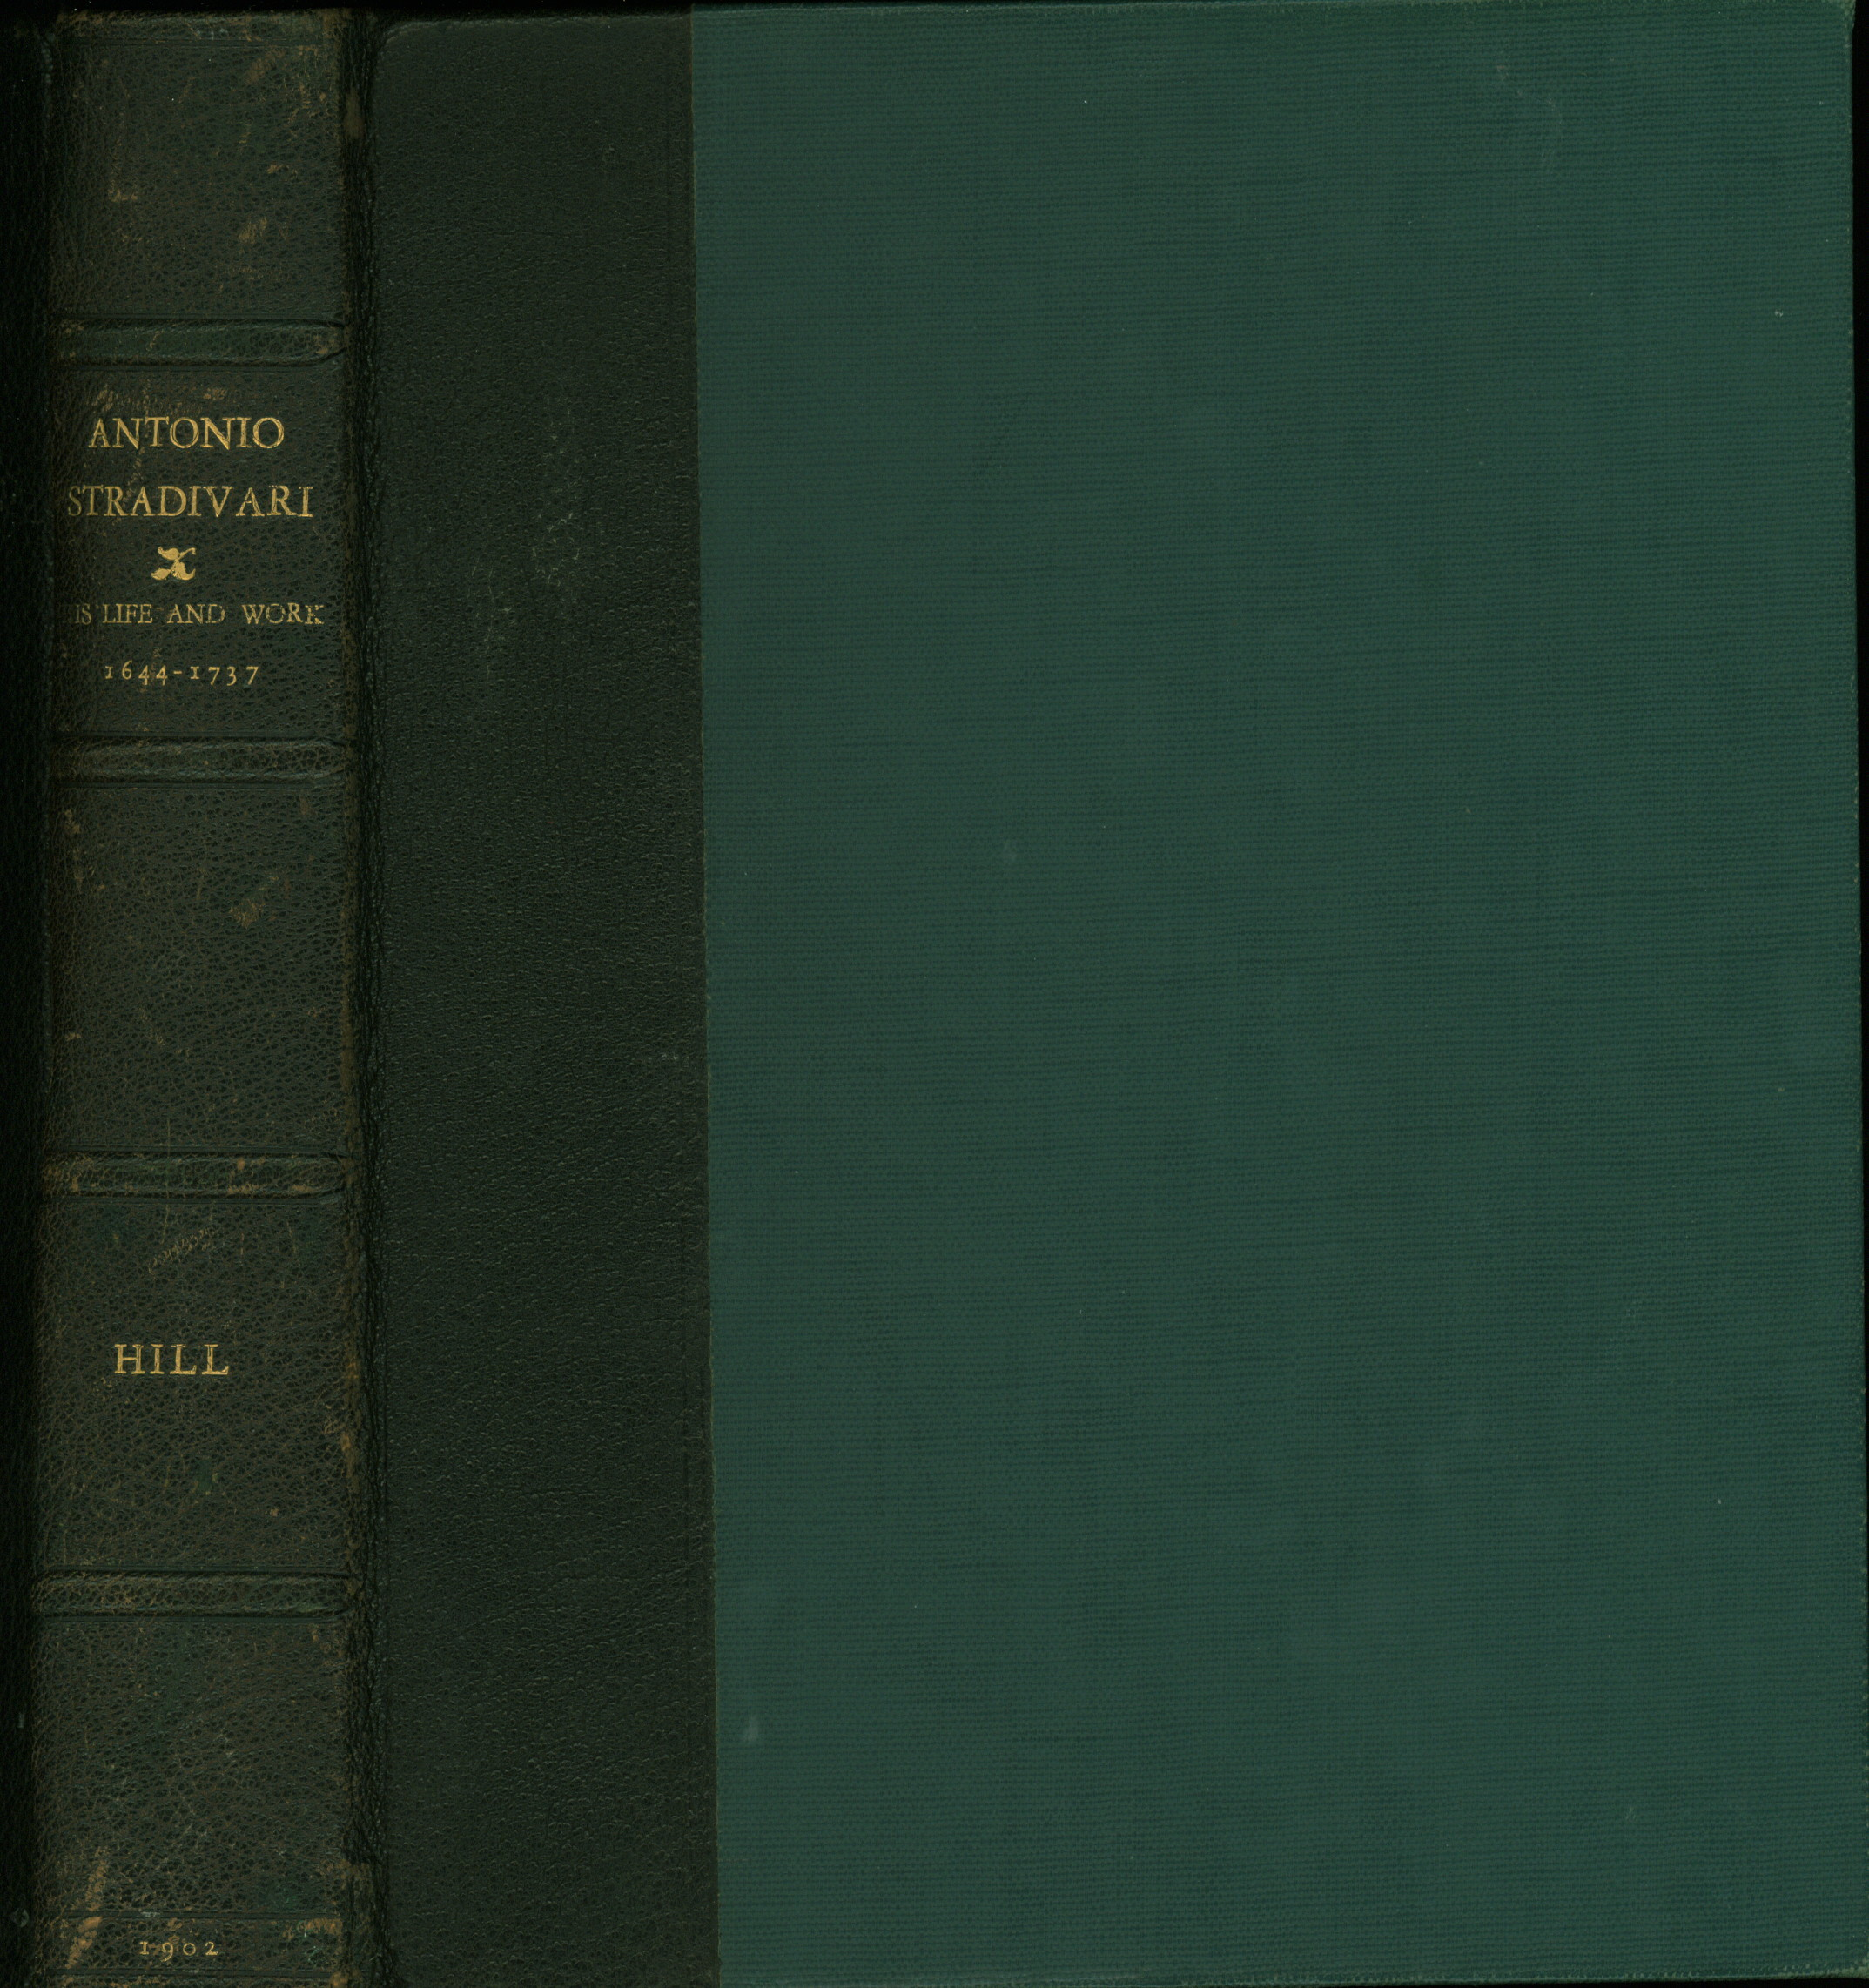 Hill, W. Henry - Antonio Stradivarius: His Life And Work (1644-1737), With An Introductory Note... - (3635)